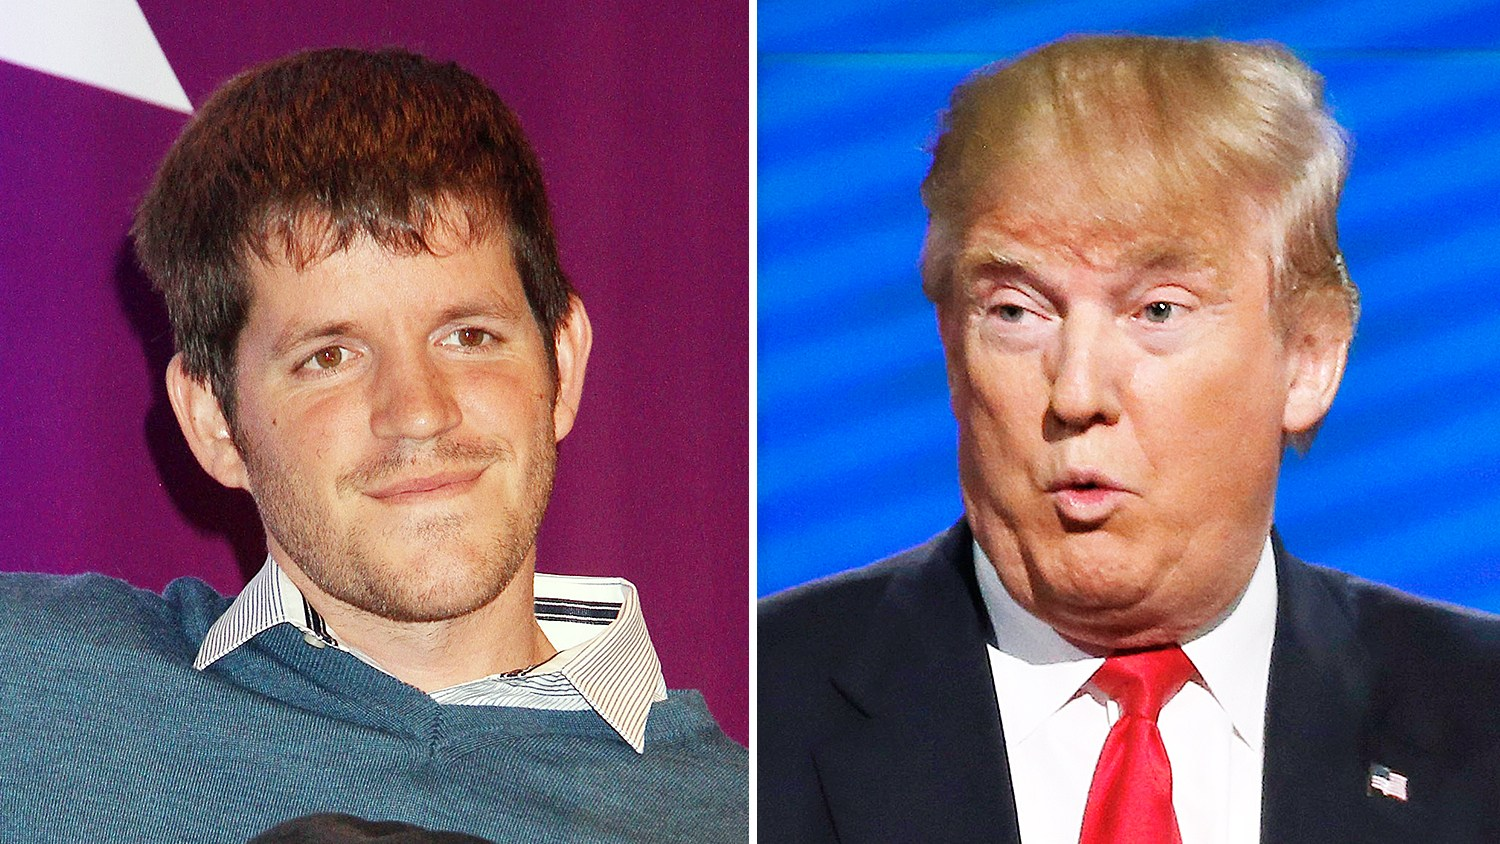 Brandon Stanton and Donald Trump